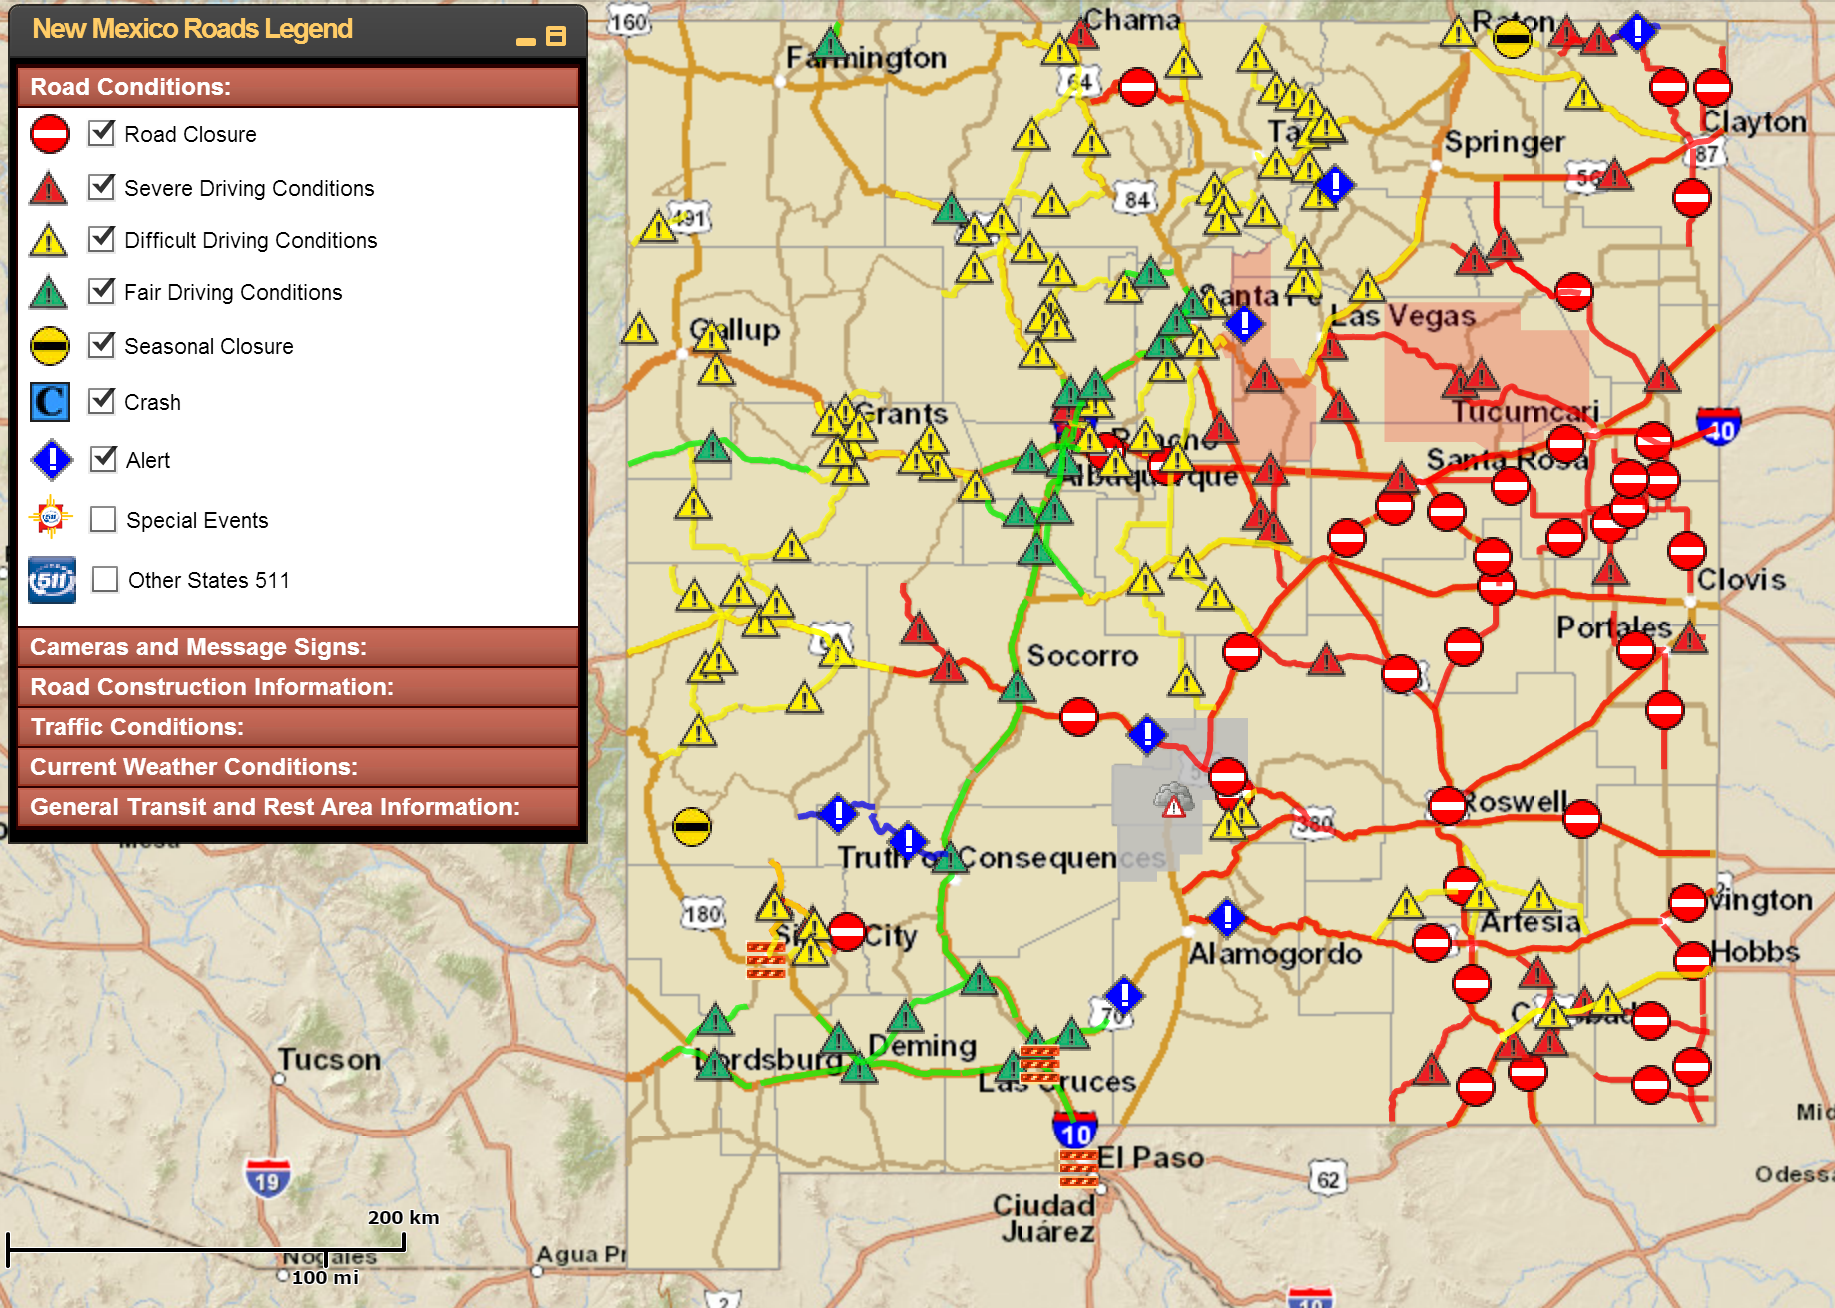 Travel conditions across New Mexico right now are treacherous at worst, bleak at best.